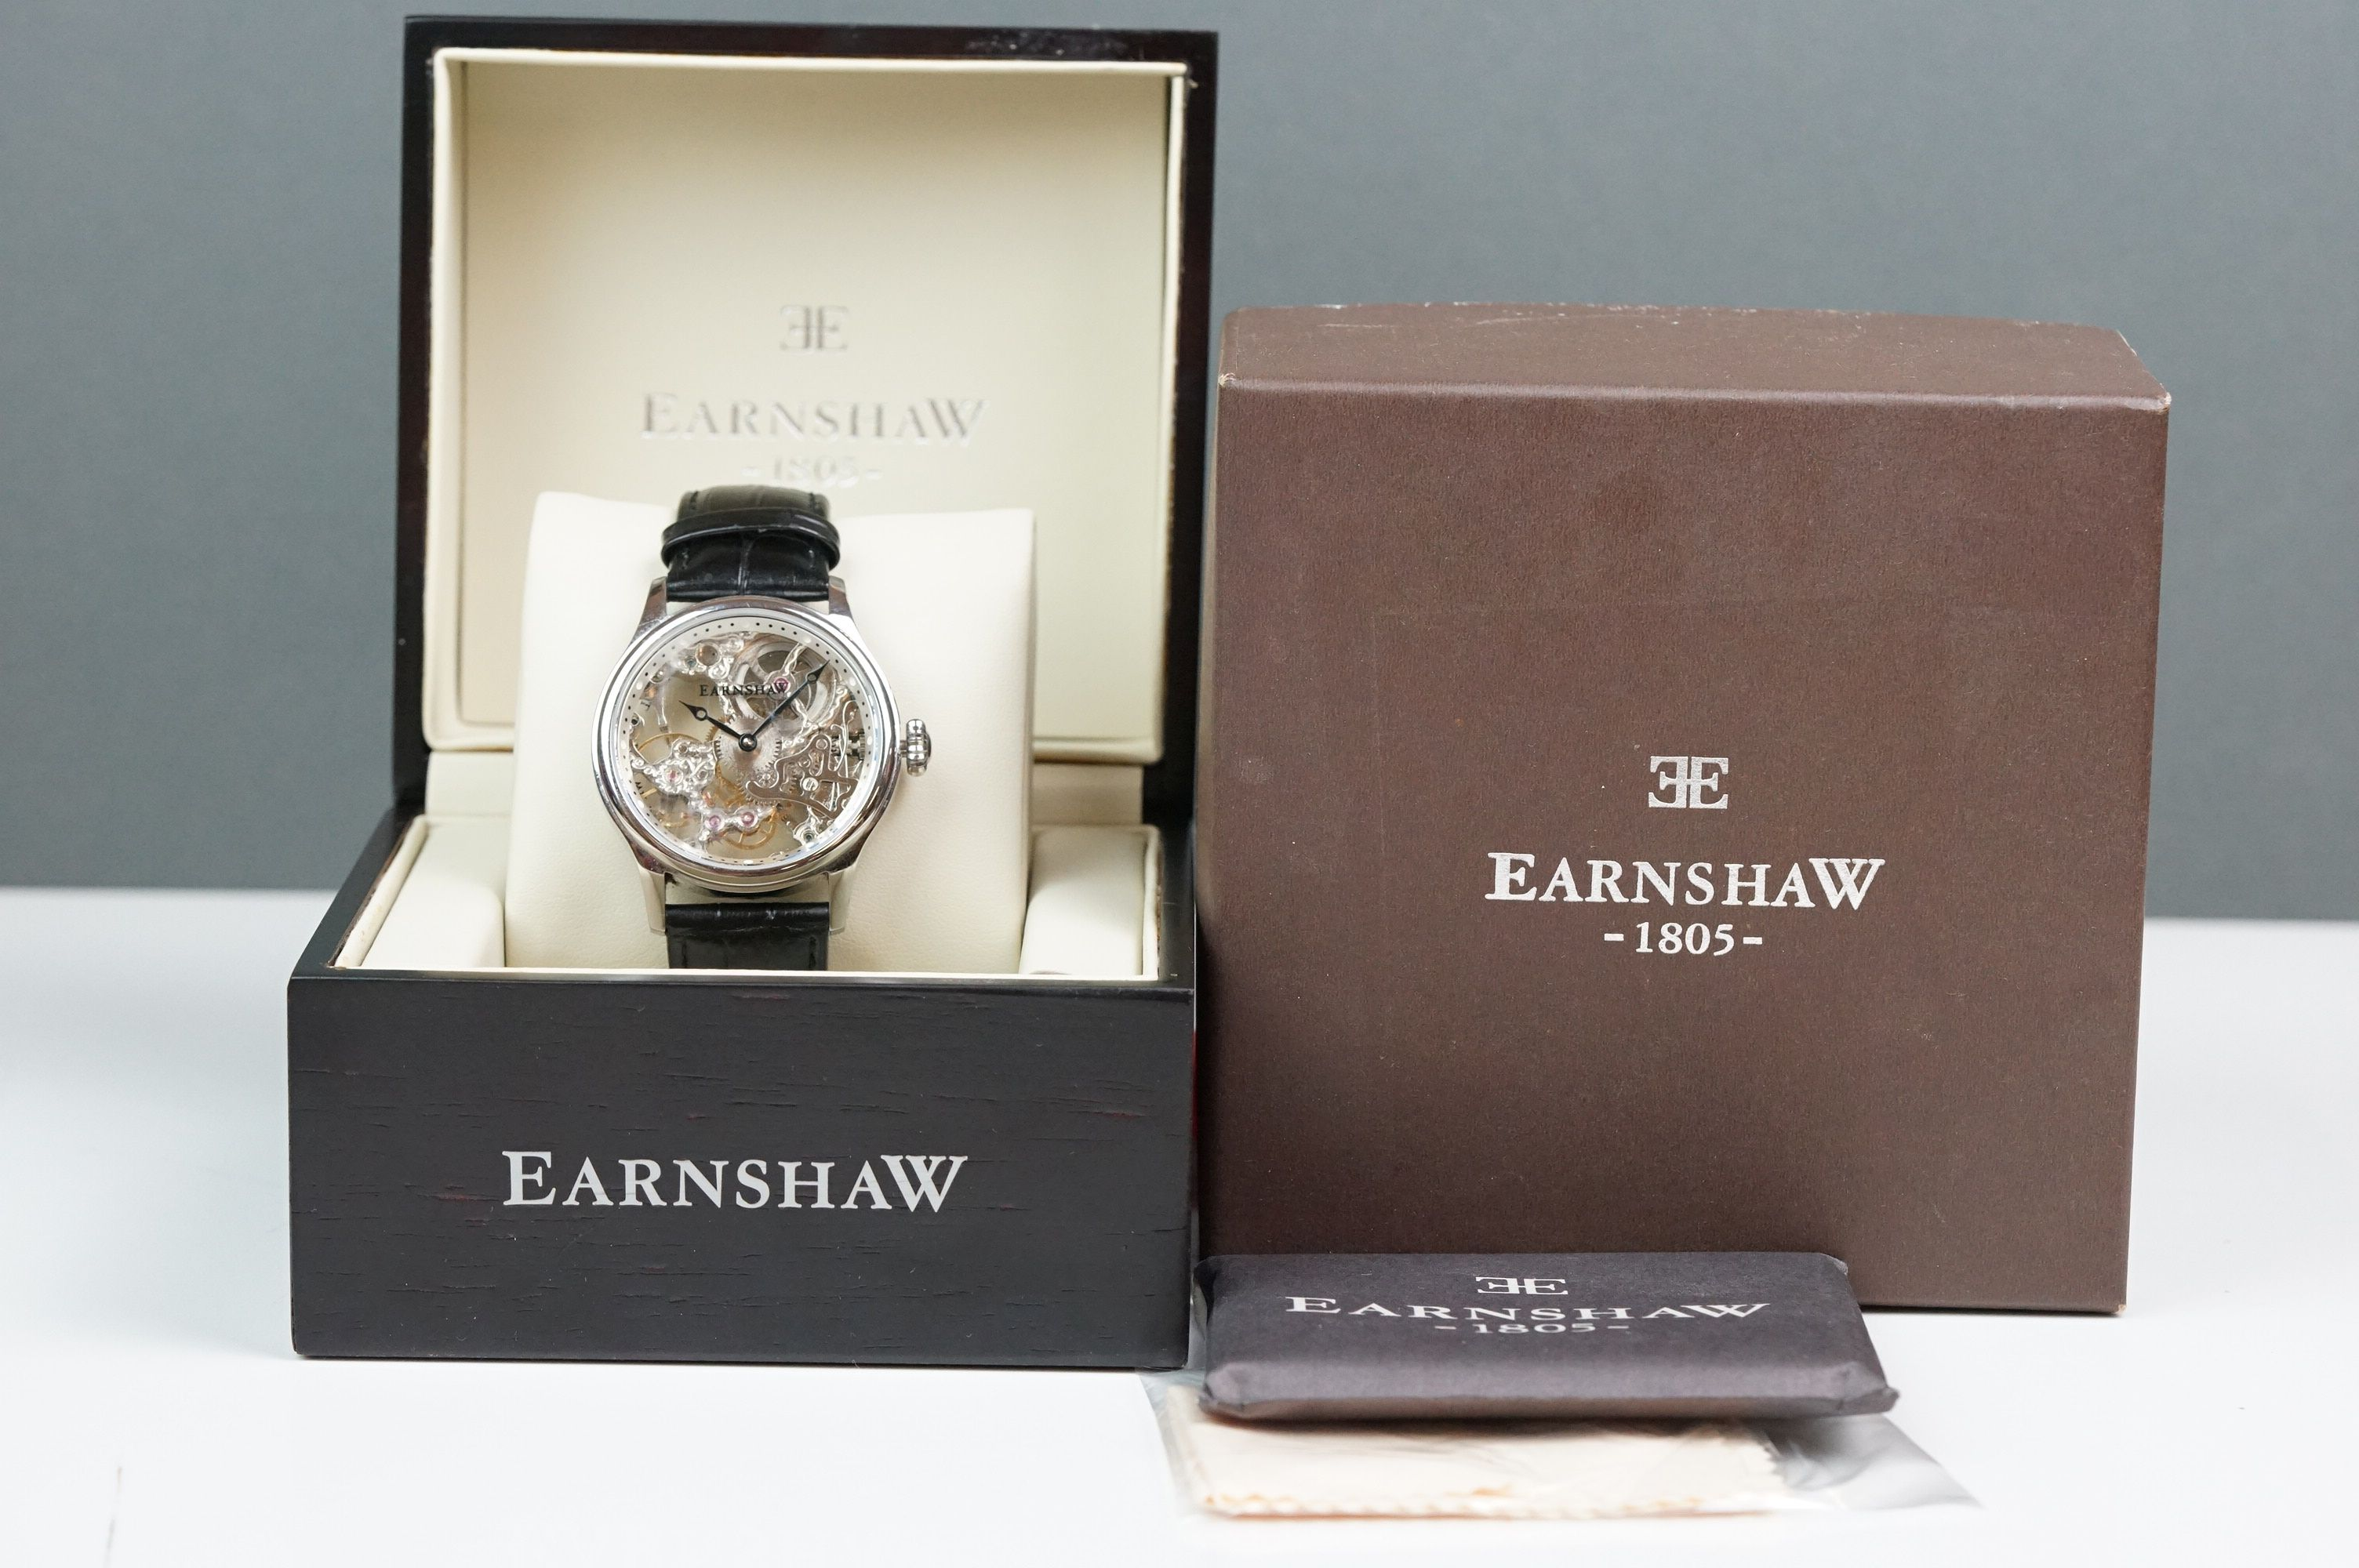 Earnshaw Gents wristwatch, skeleton face and dial, WR 5 ATM 8049, together with paperwork, box and